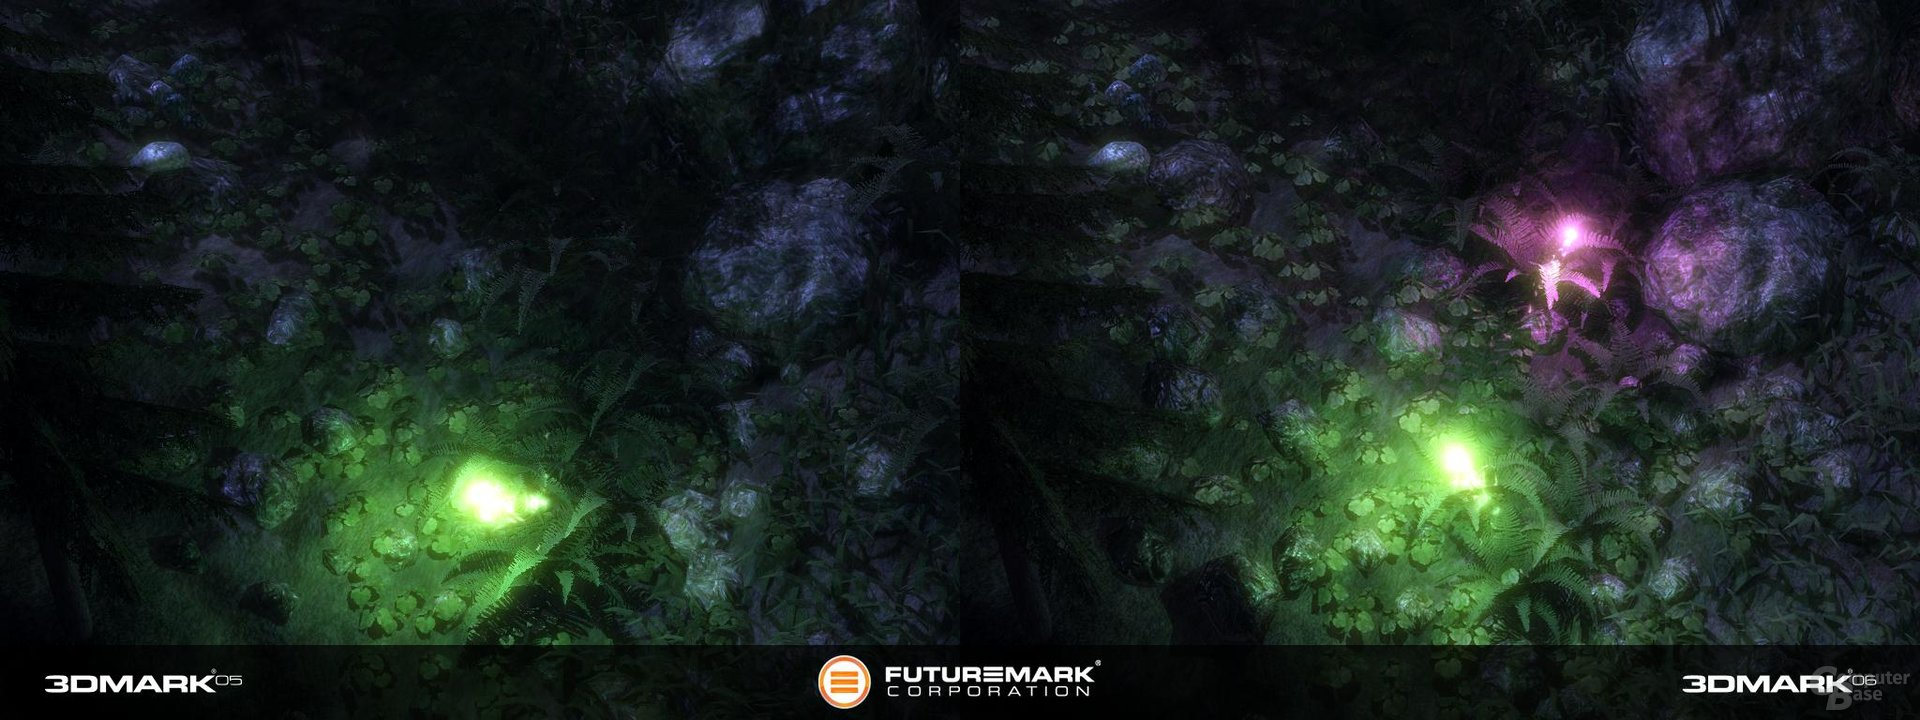 Firefly_comparison_003